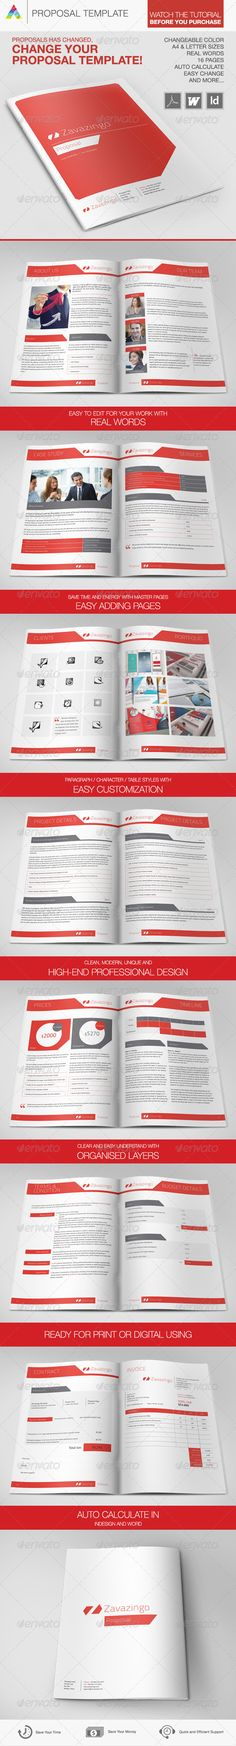 Project Proposal Template (Updated) Proposal templates, Project - microsoft word proposal template free download